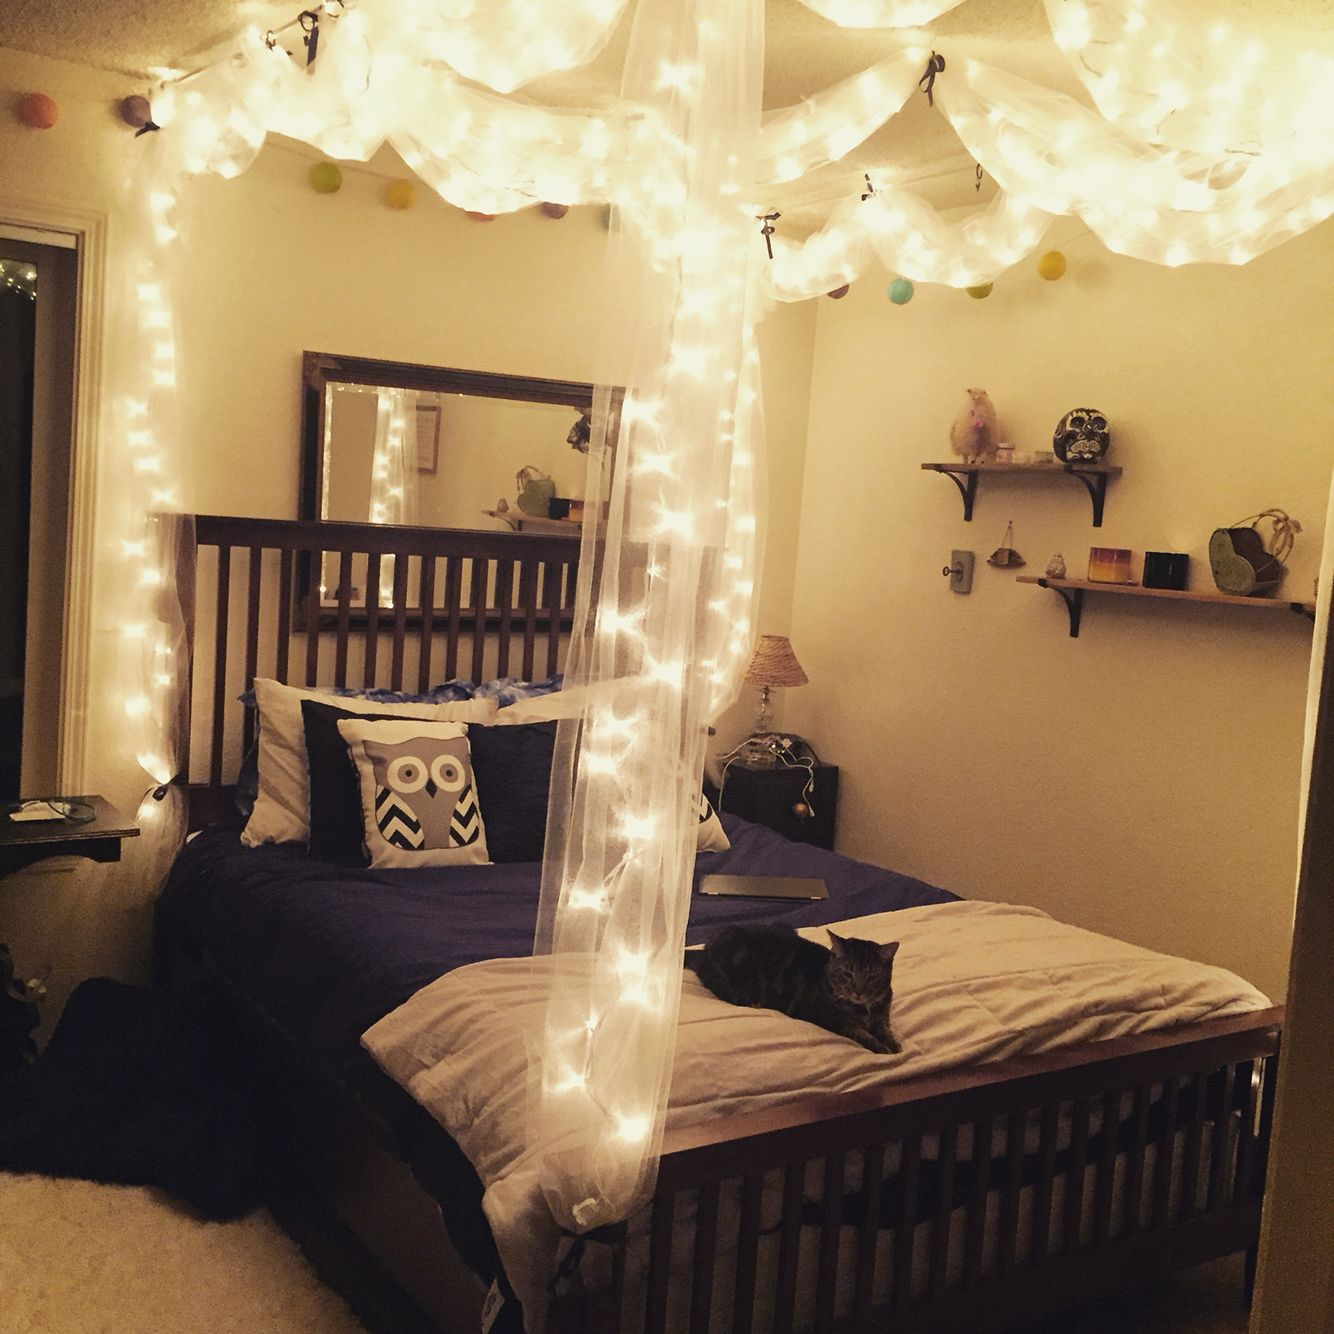 DIY Bed Canopy with Lights | DIY Hanging Bed Canopy - Using $5 sheer white curtains from Target ... | Dream Home | Pinterest | Hanging beds Canopy and ... & DIY Bed Canopy with Lights | DIY Hanging Bed Canopy - Using $5 ...